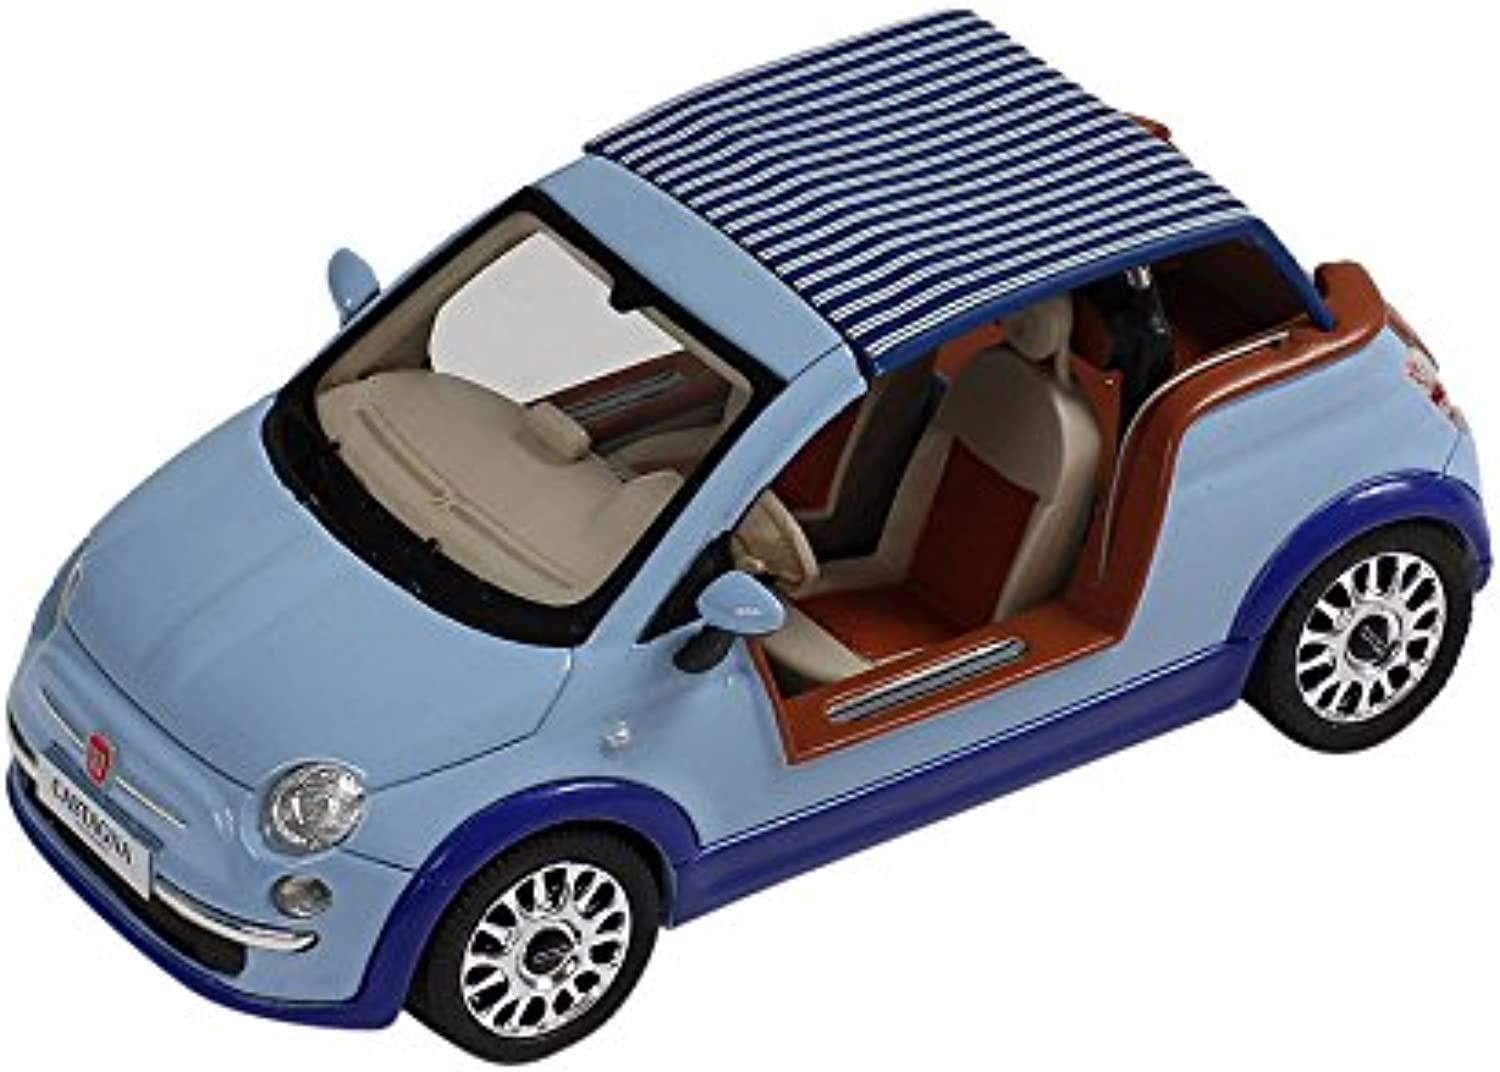 PremiumX 1 43 Scale 2008 Fiat 500 Tender Two Castagna Milano Model Car (Light bluee)